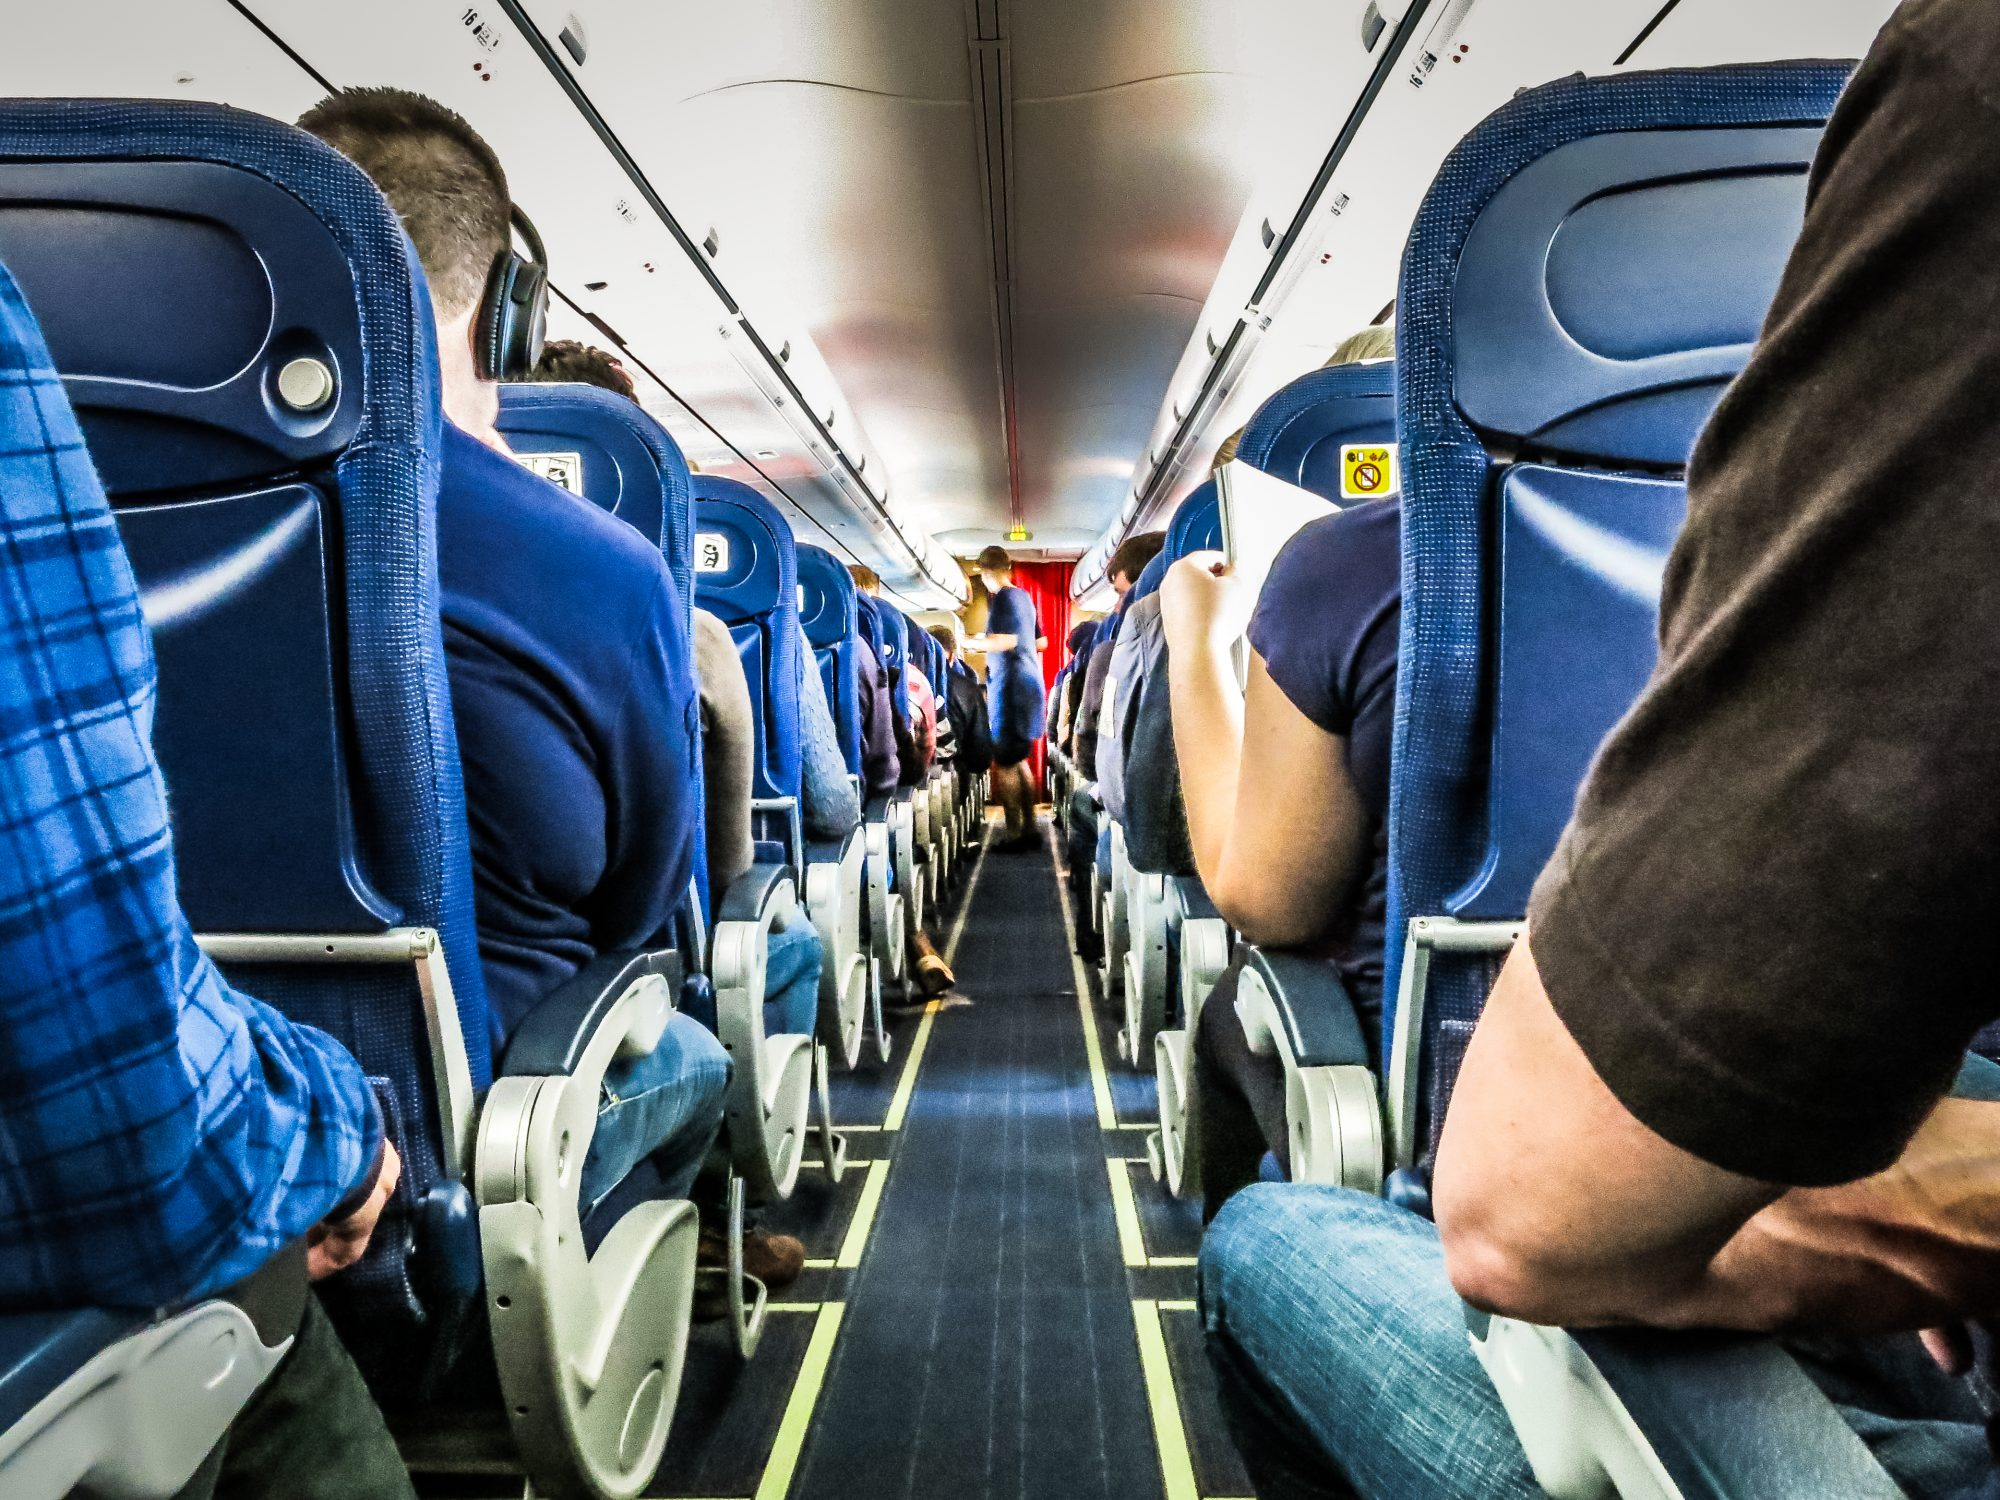 Airplane Passengers in Seats